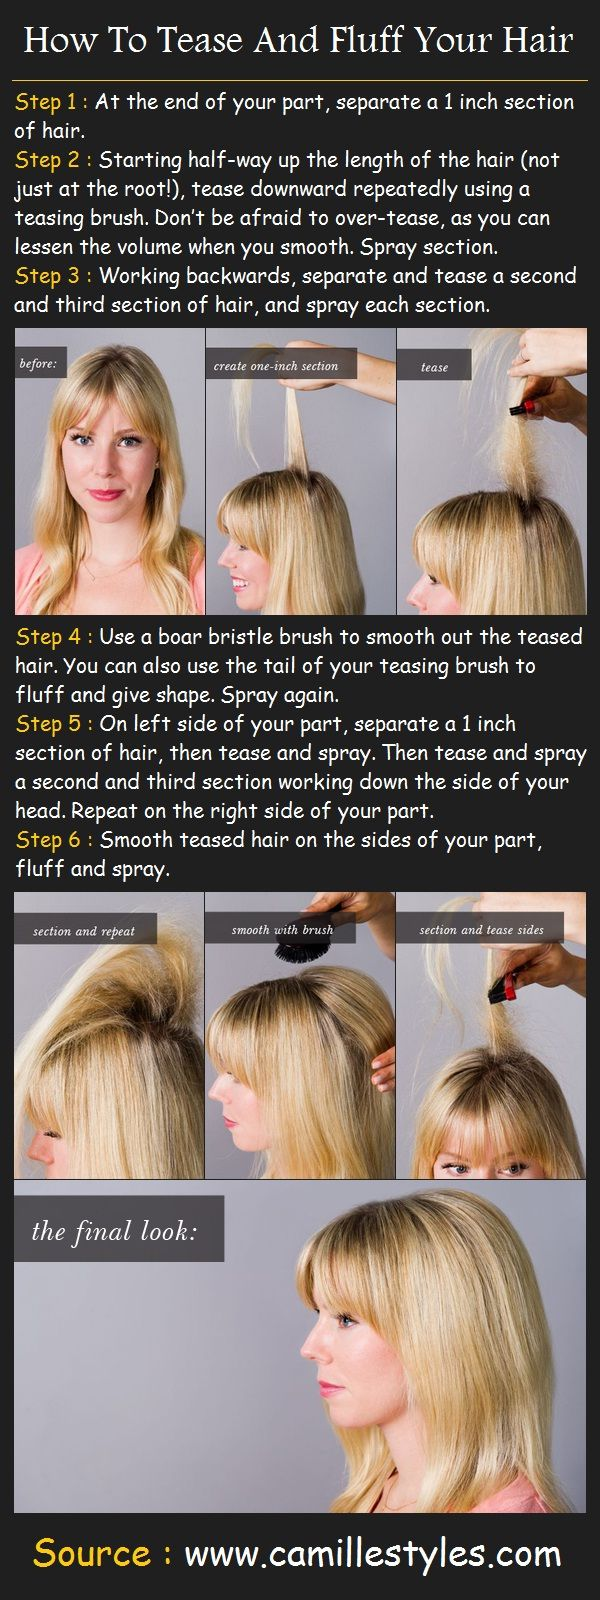 How To Tease And Fluff Your Hair | Pinterest Tutorials - I don't really get the point of teasing hair but this could he helpful sometime?